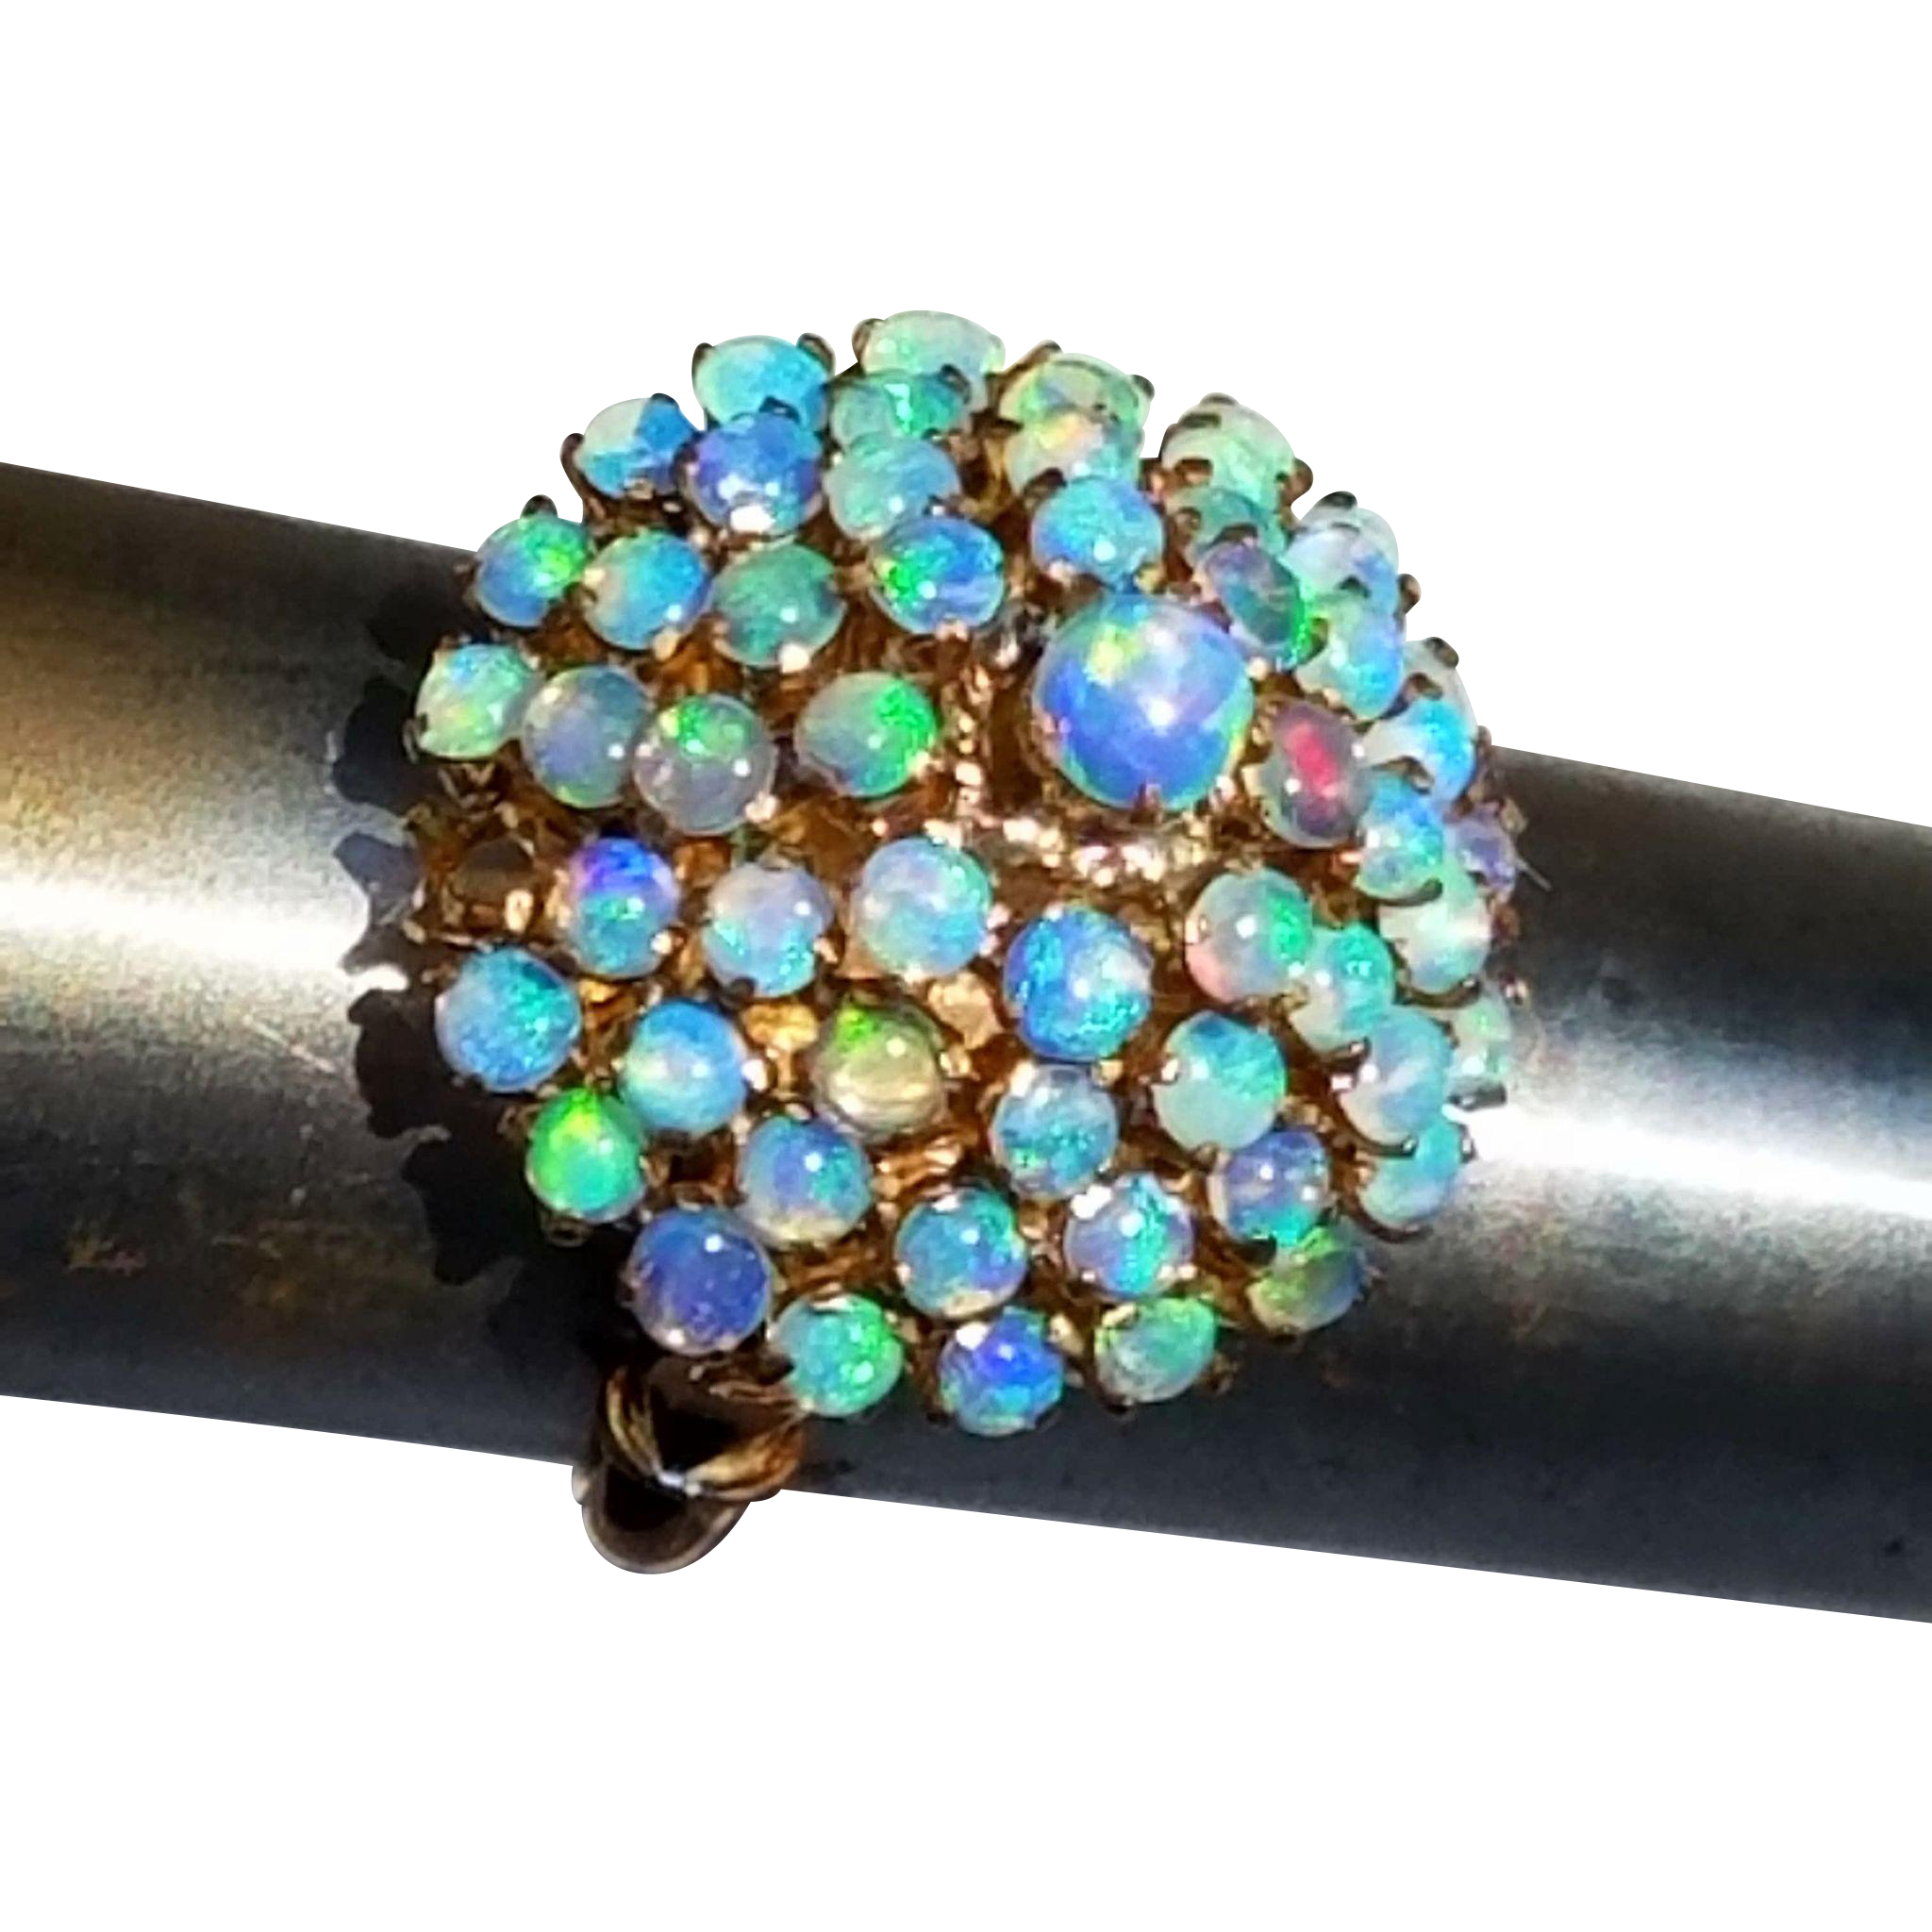 Vintage 14K Rose Gold Cluster of 58 Opals Dome Ring 4 3/4